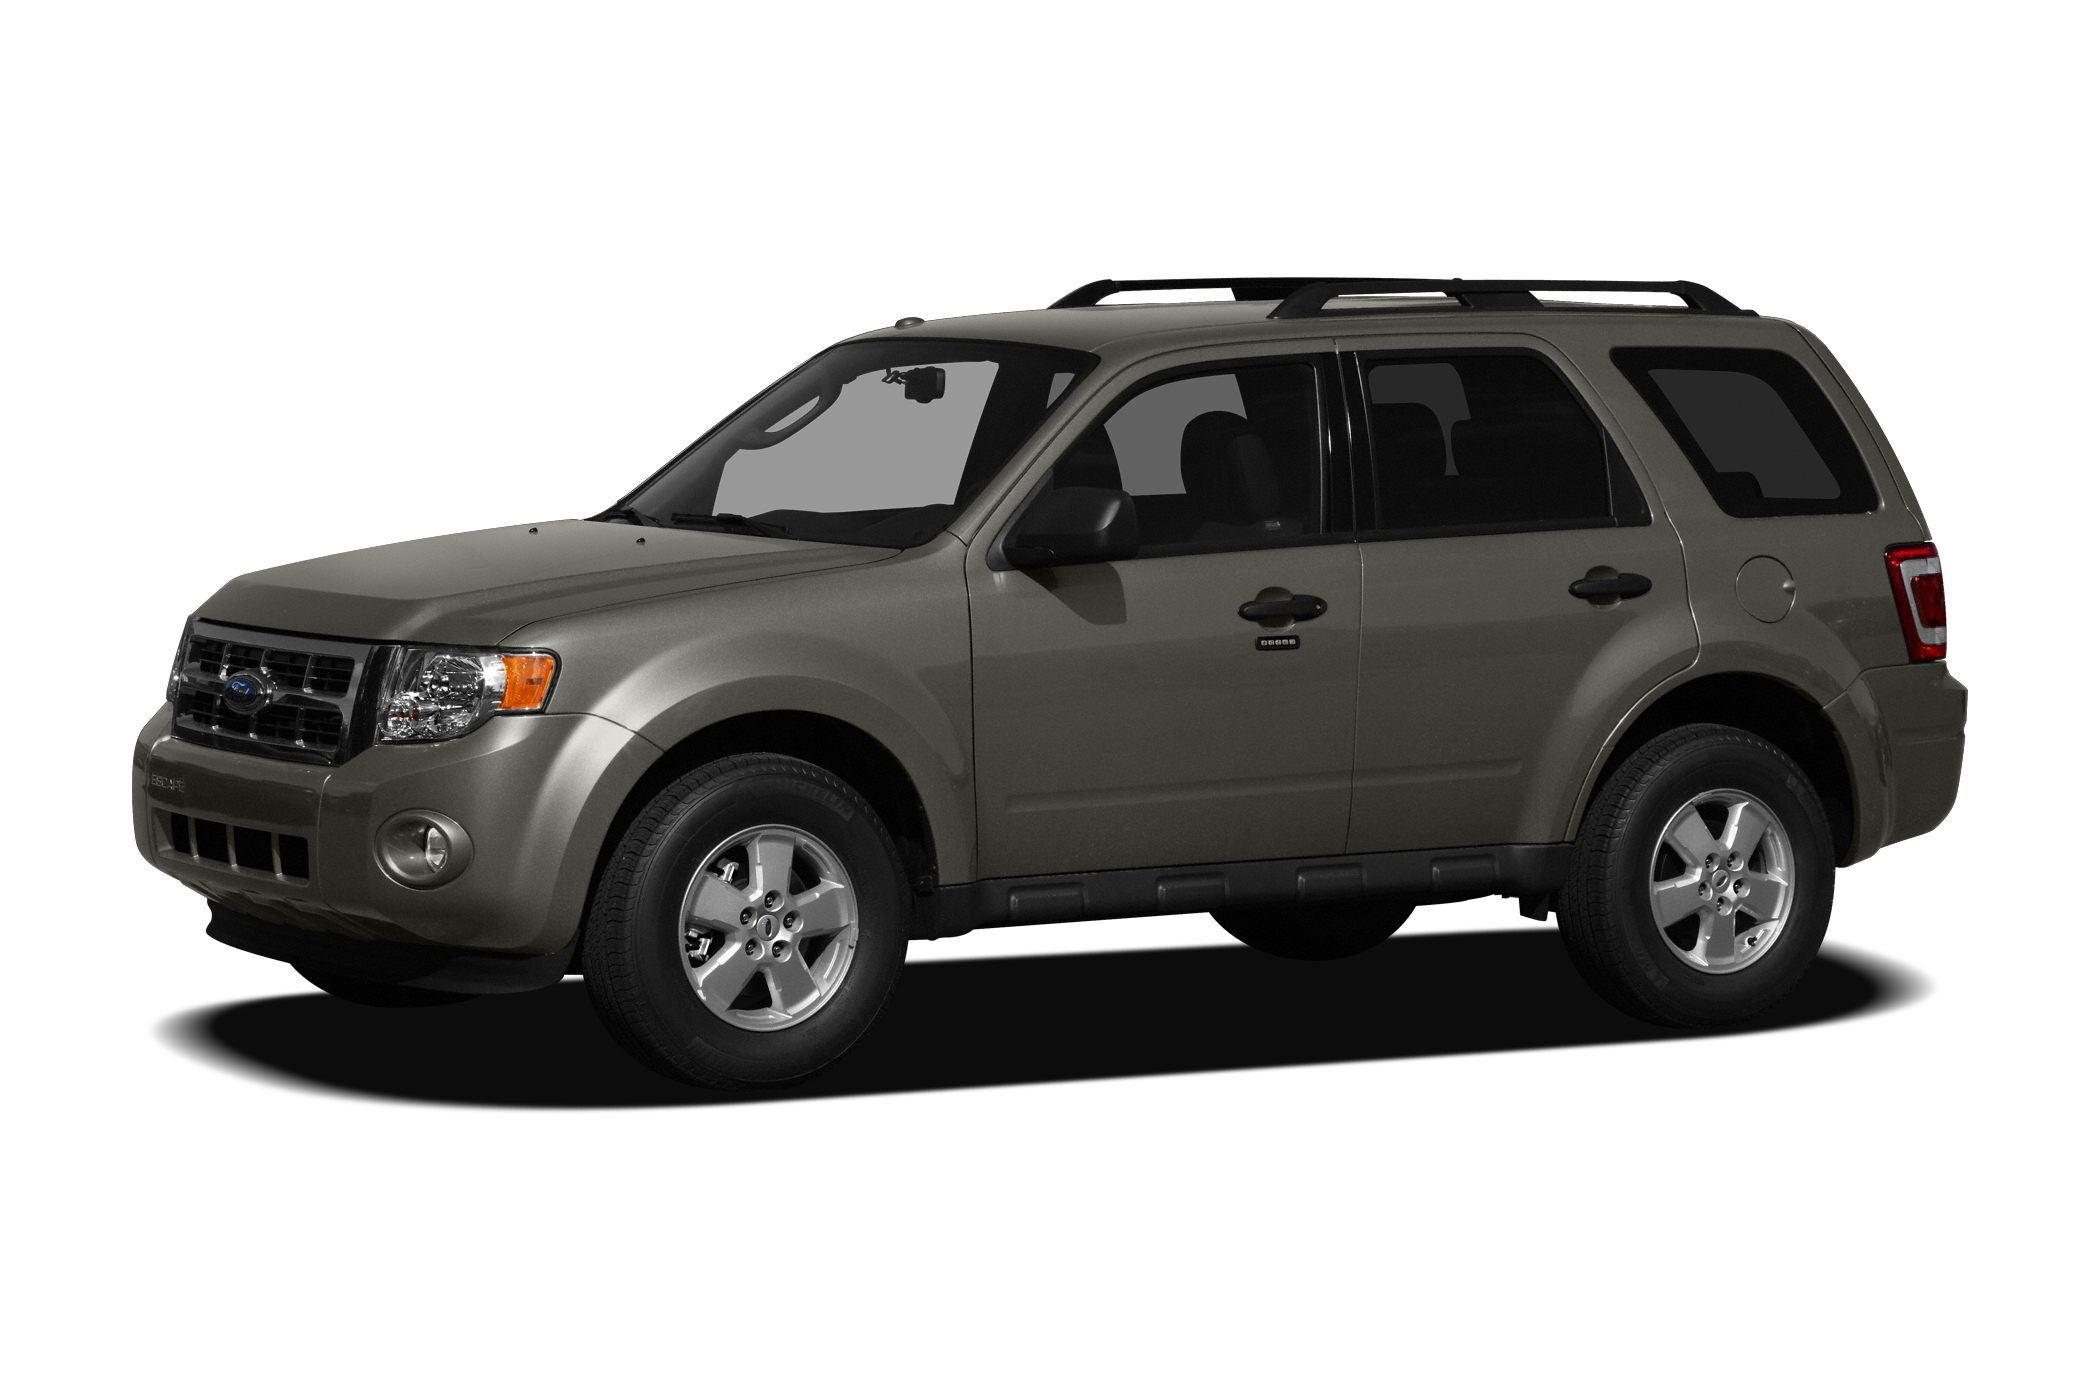 2011 ford escape safety features